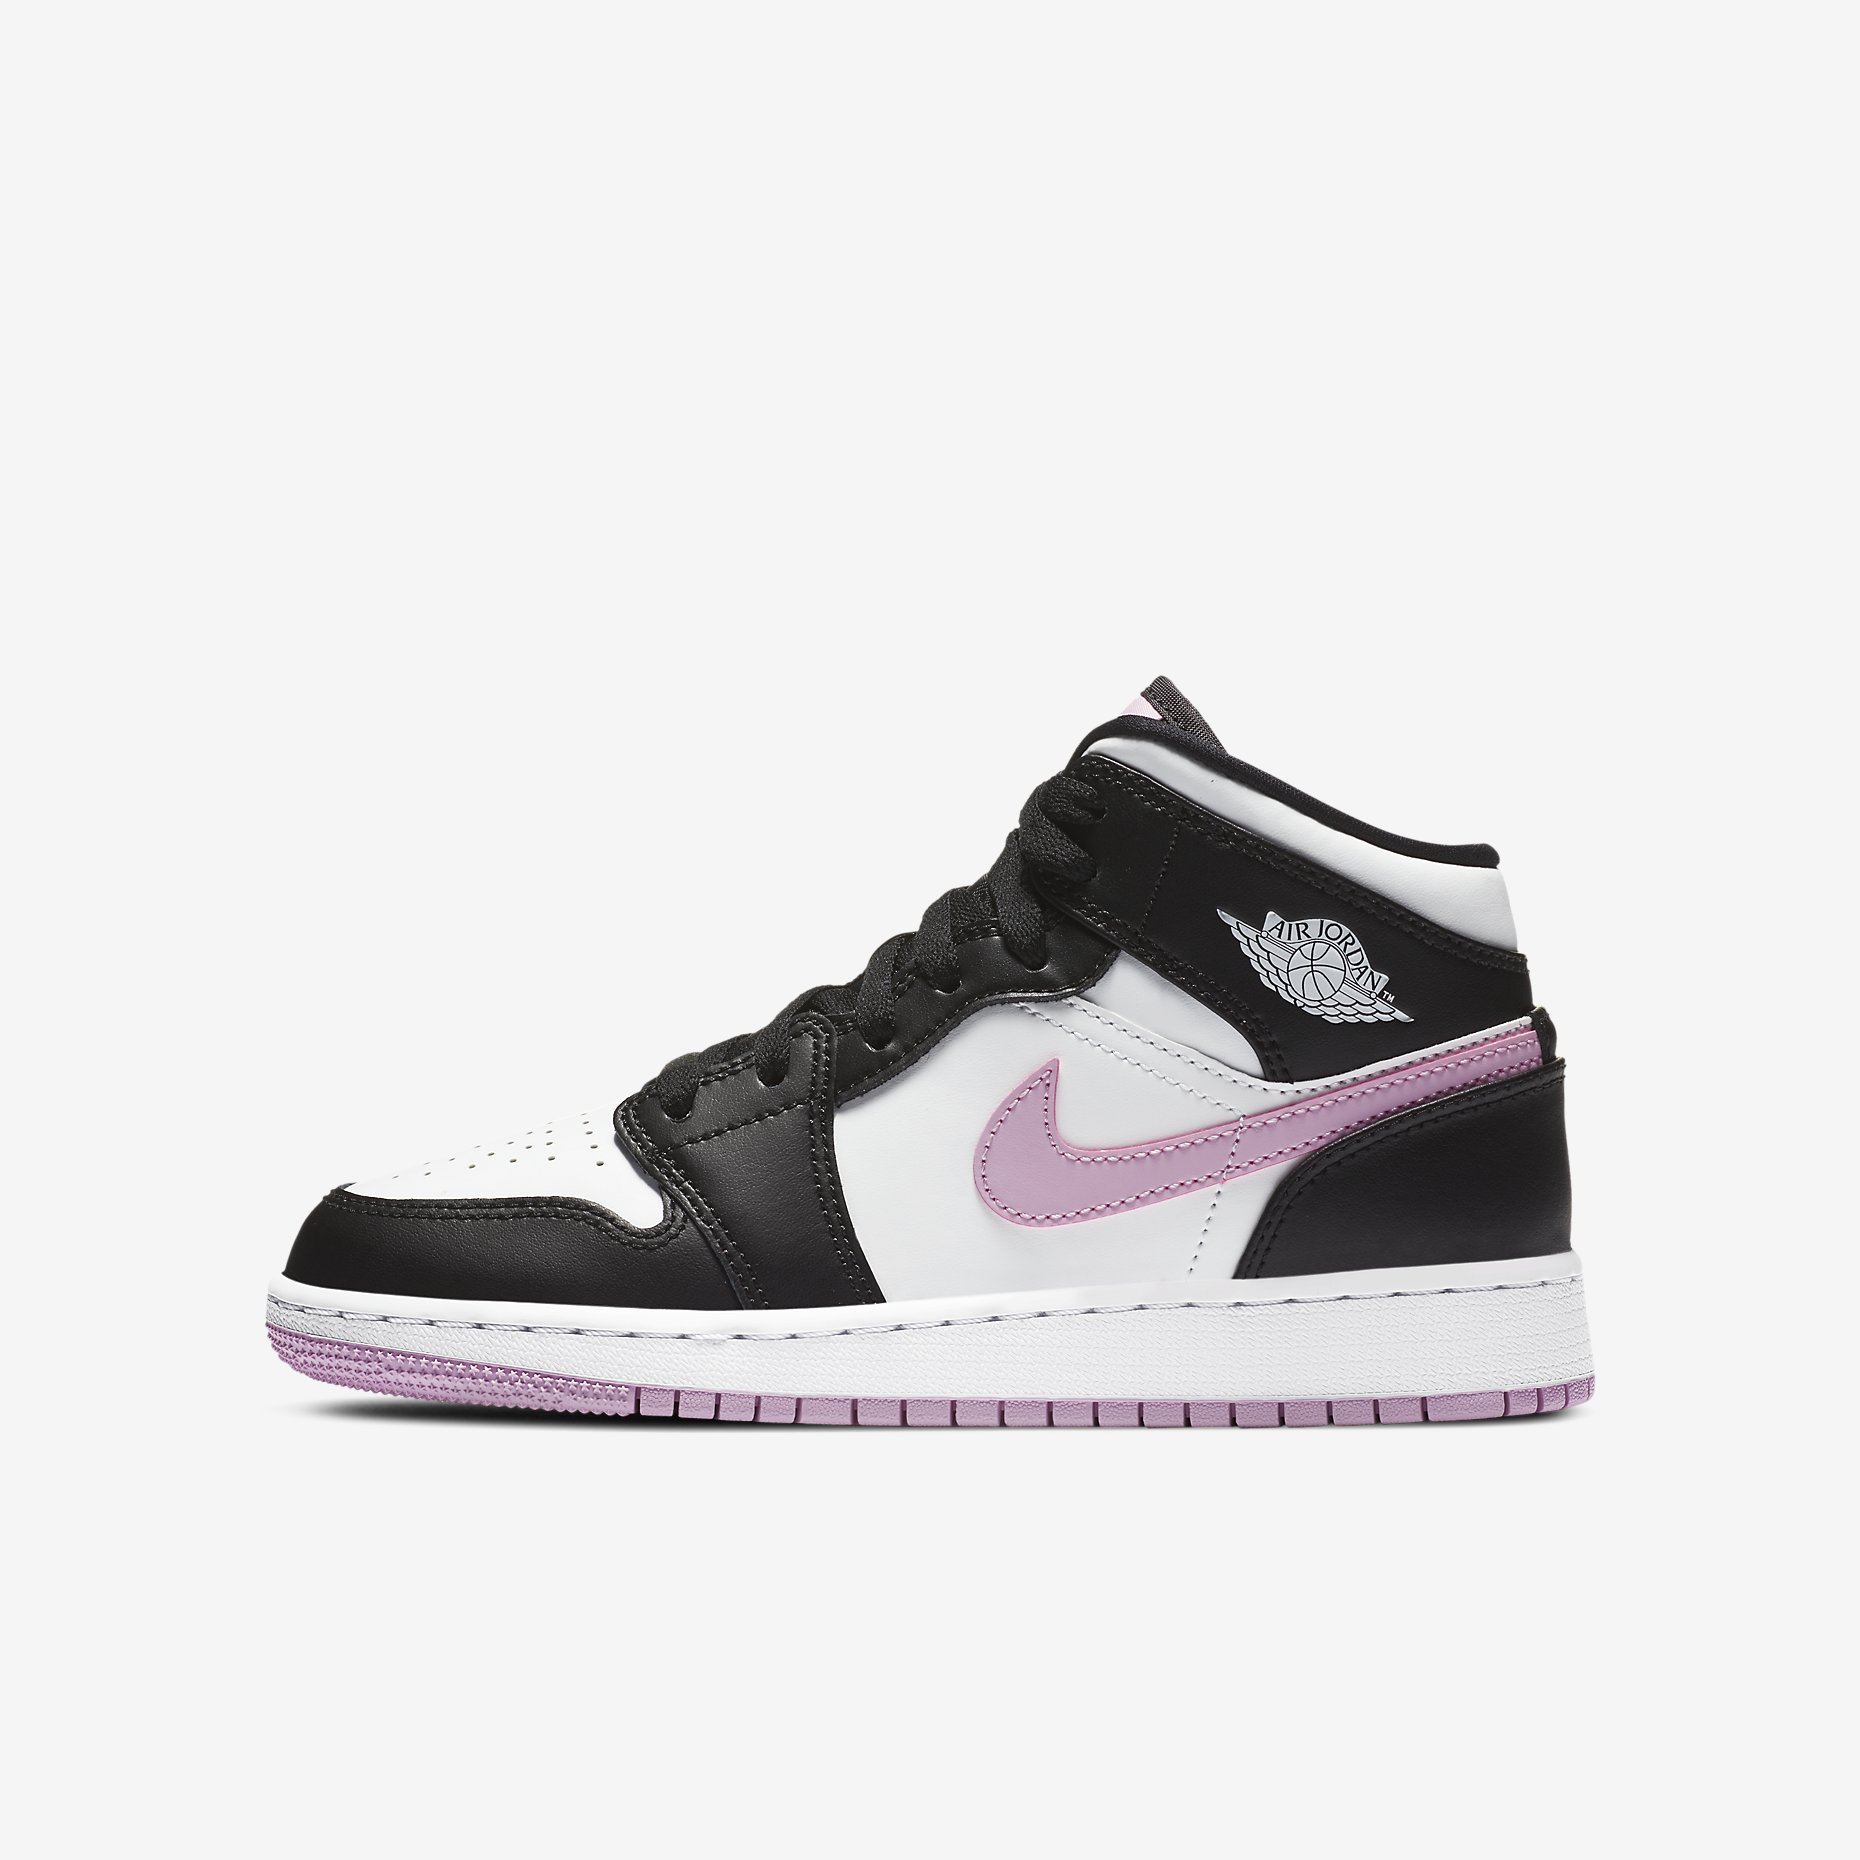 Air Jordan 1 Mid GS 'White/Black/Light Arctic Pink'}